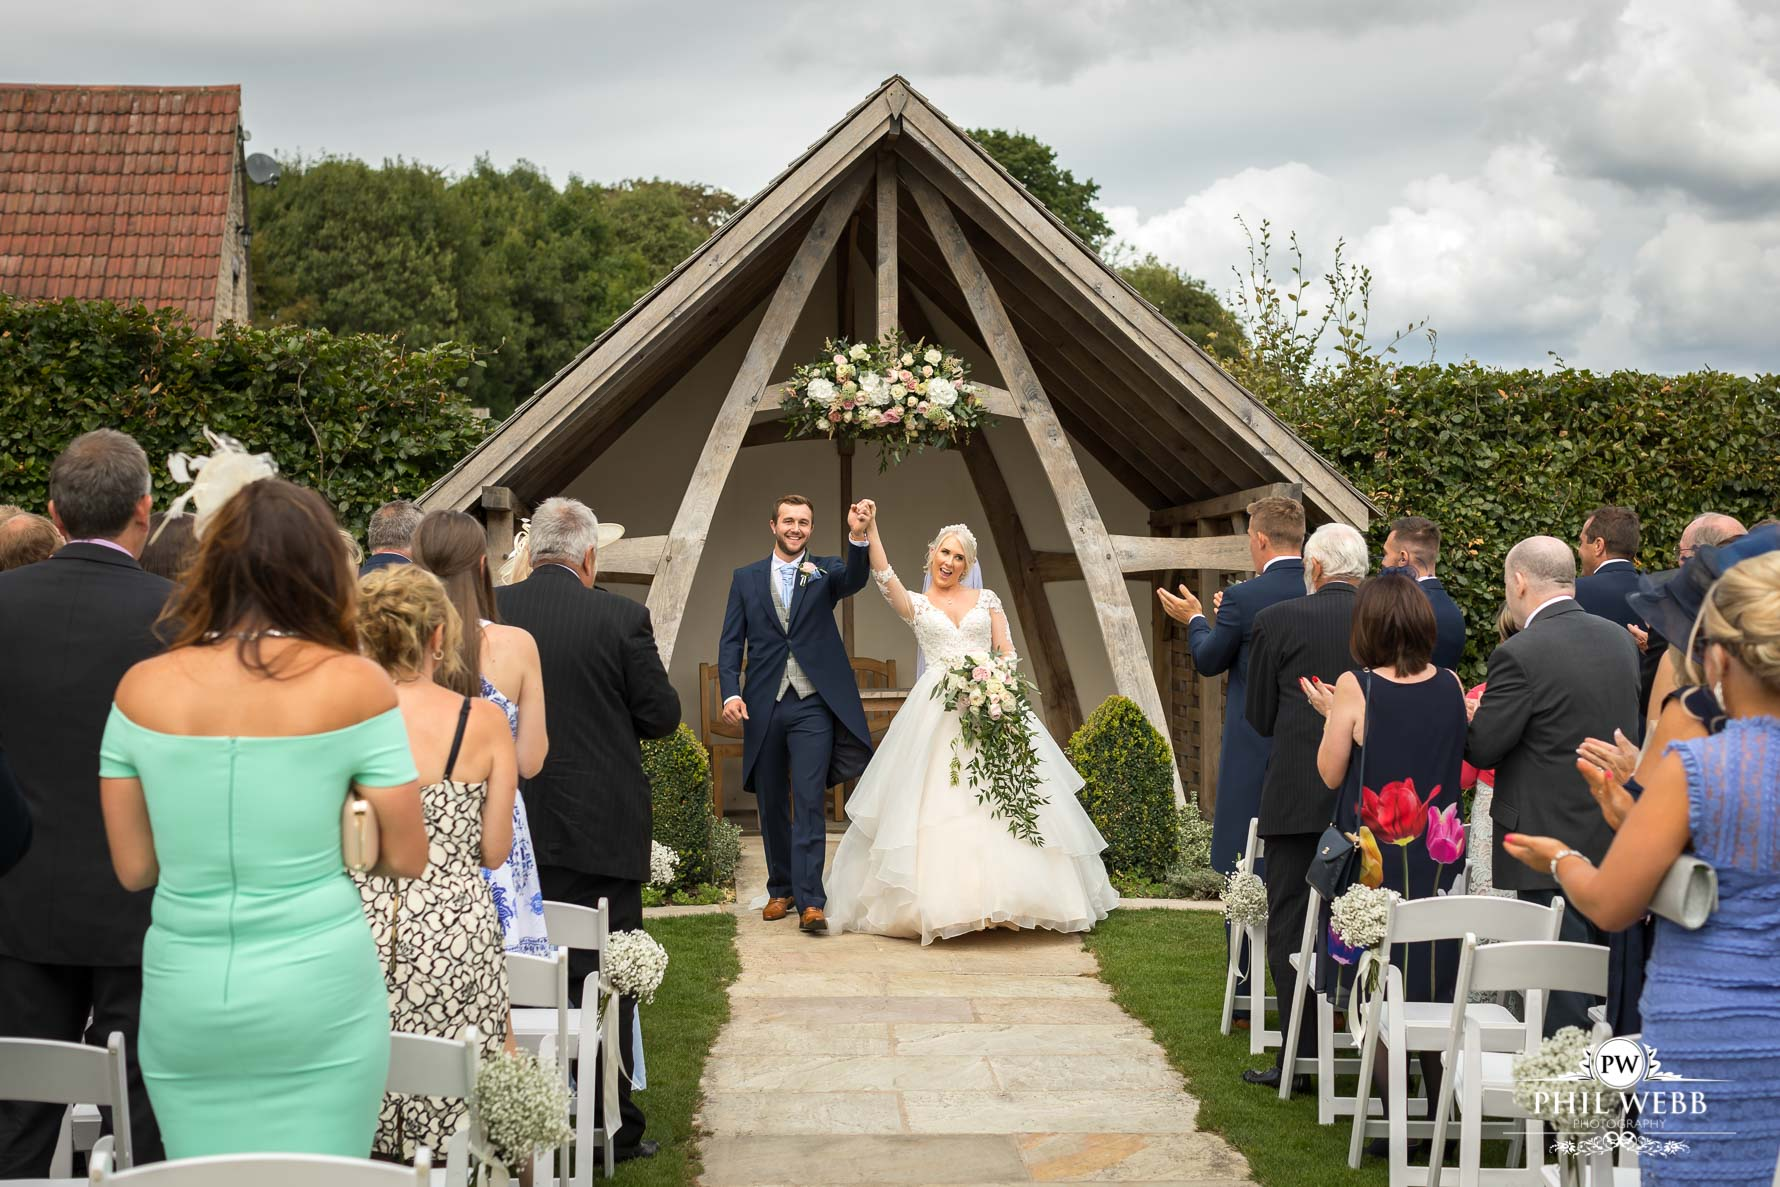 bride and groom walking down the aisle celebrating at Kingscote Barn outdoor wedding ceremony